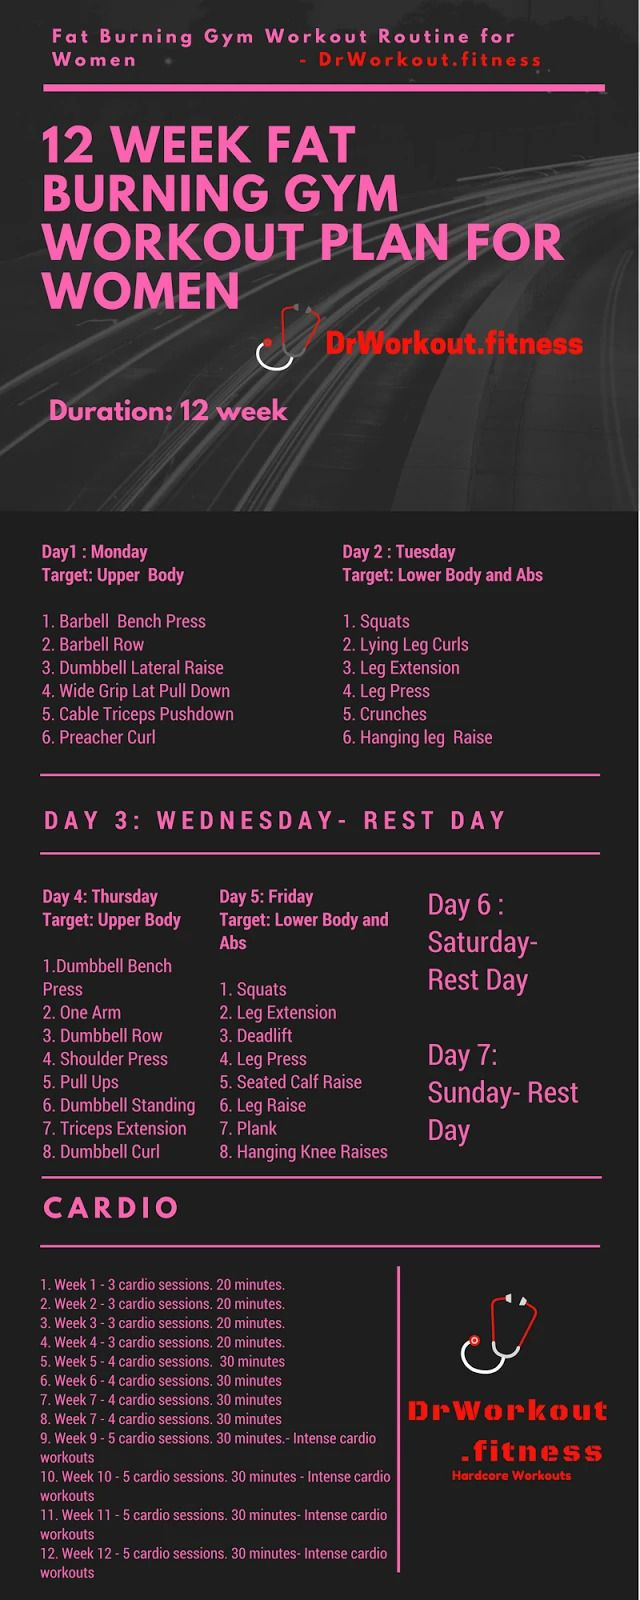 Pin On Fitness Body Fitness Tips Workouts Exercises Shape Strength Training Fitness Motivation